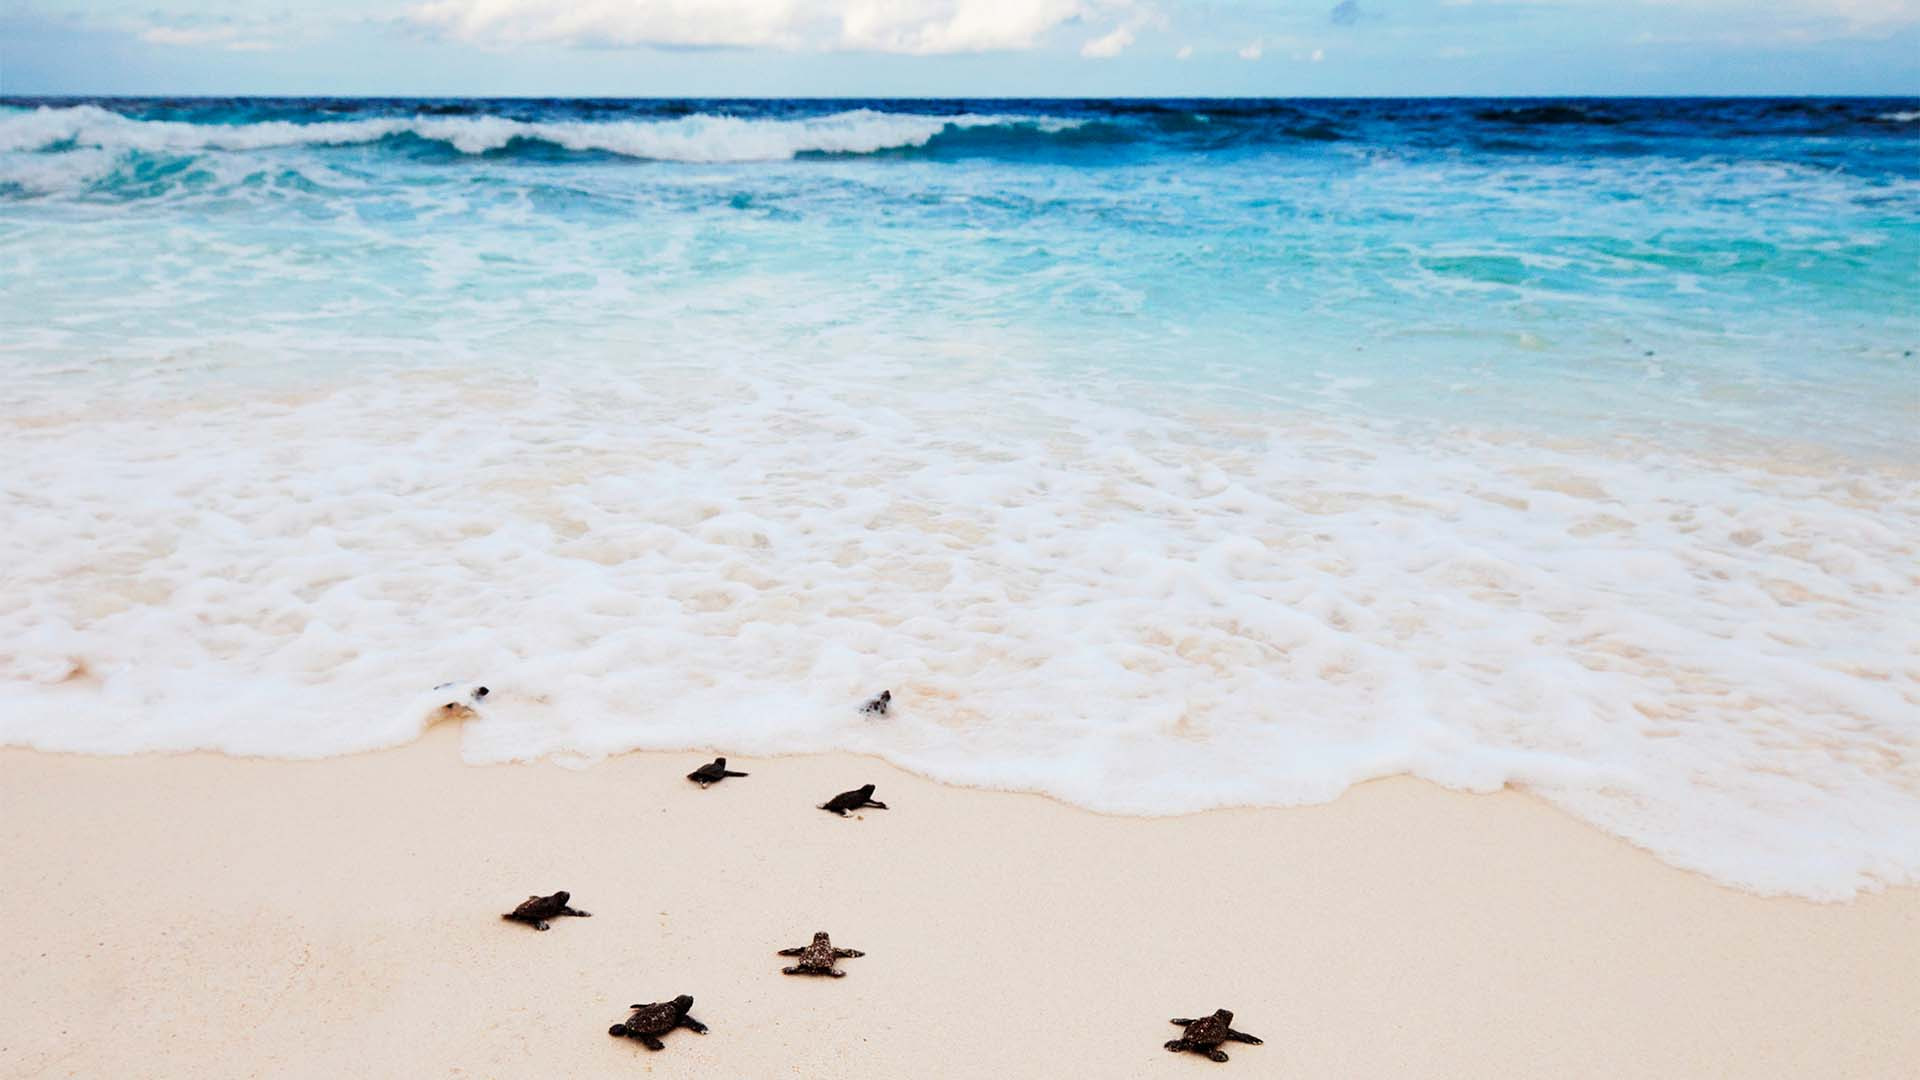 Turtles on the shores of the Seychelles